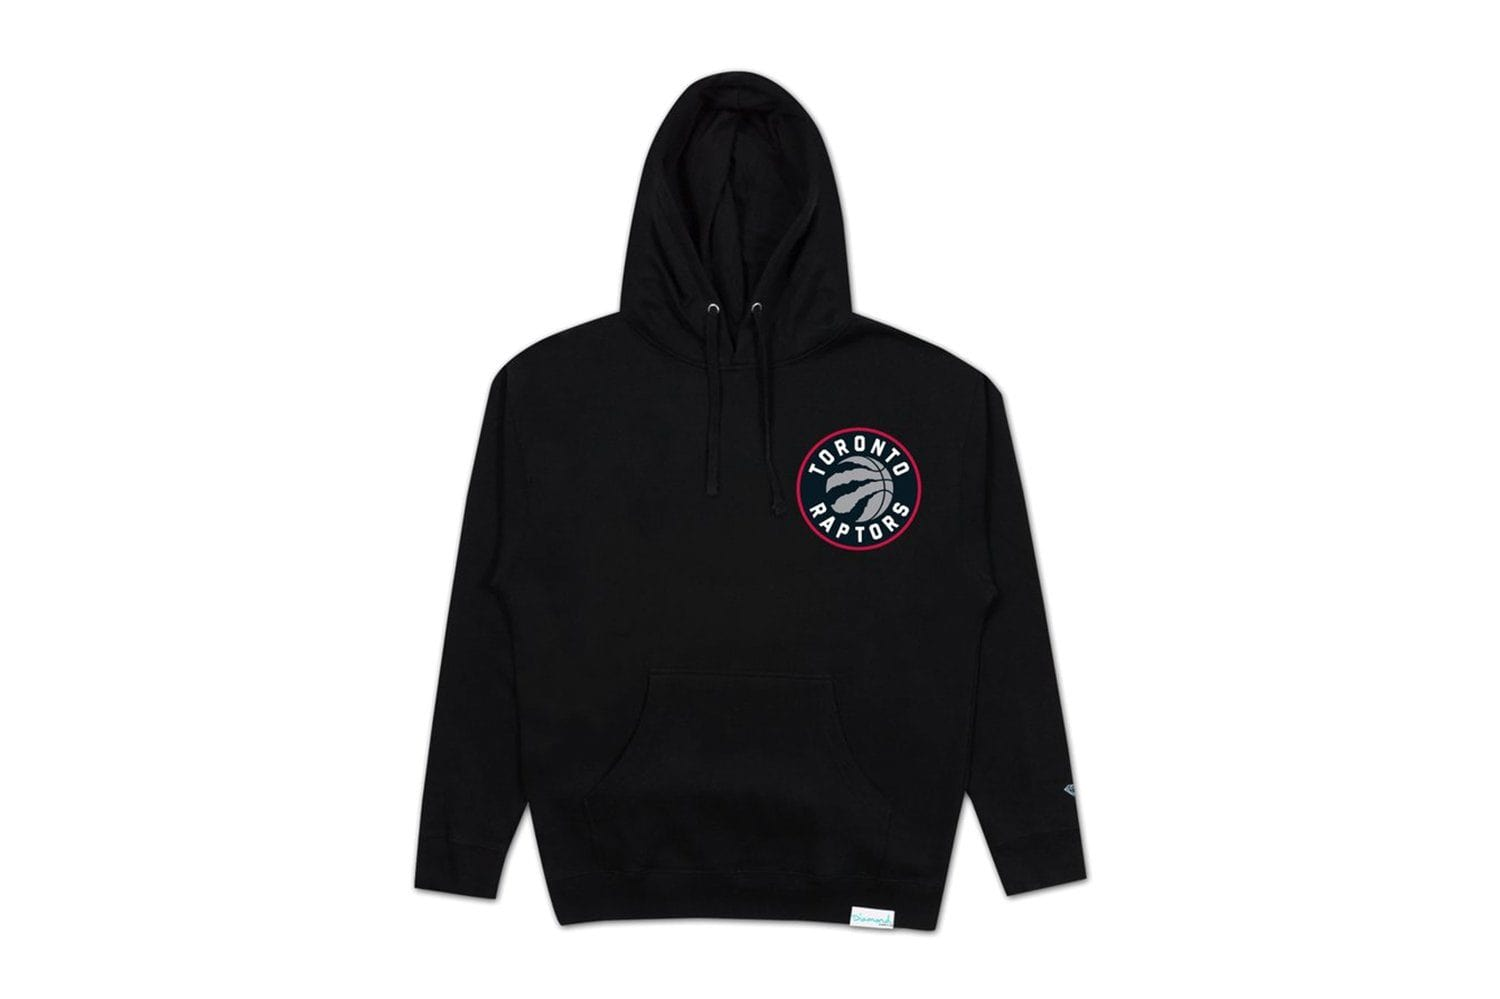 SPACE JAM RAPTORS HOODIE - A20DMPF202 MENS SOFTGOODS DIAMOND SUPPLY CO.